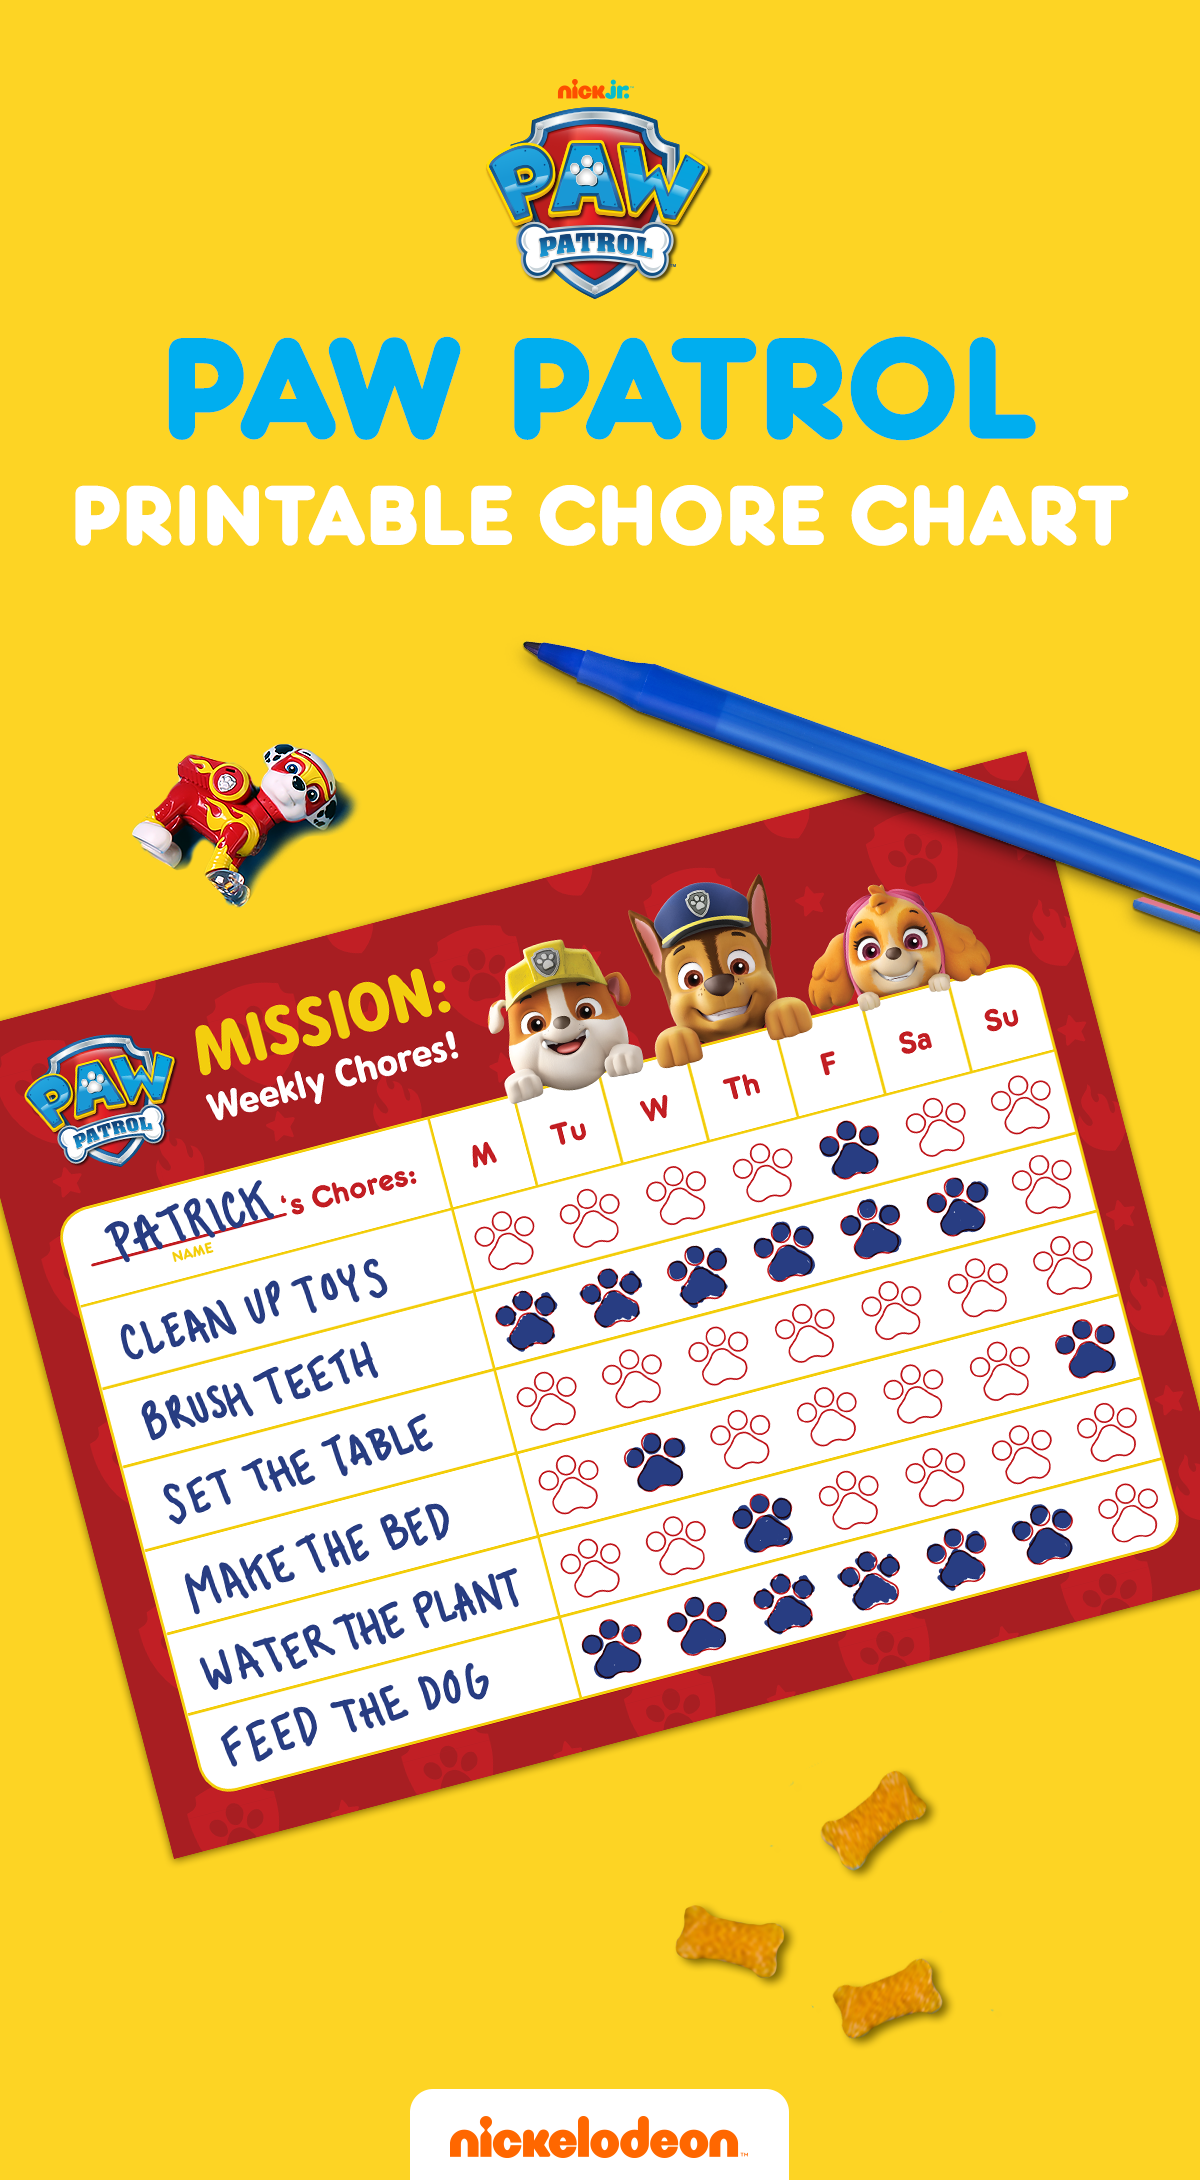 Paw Patrol Chore Chart Nickelodeon Parents